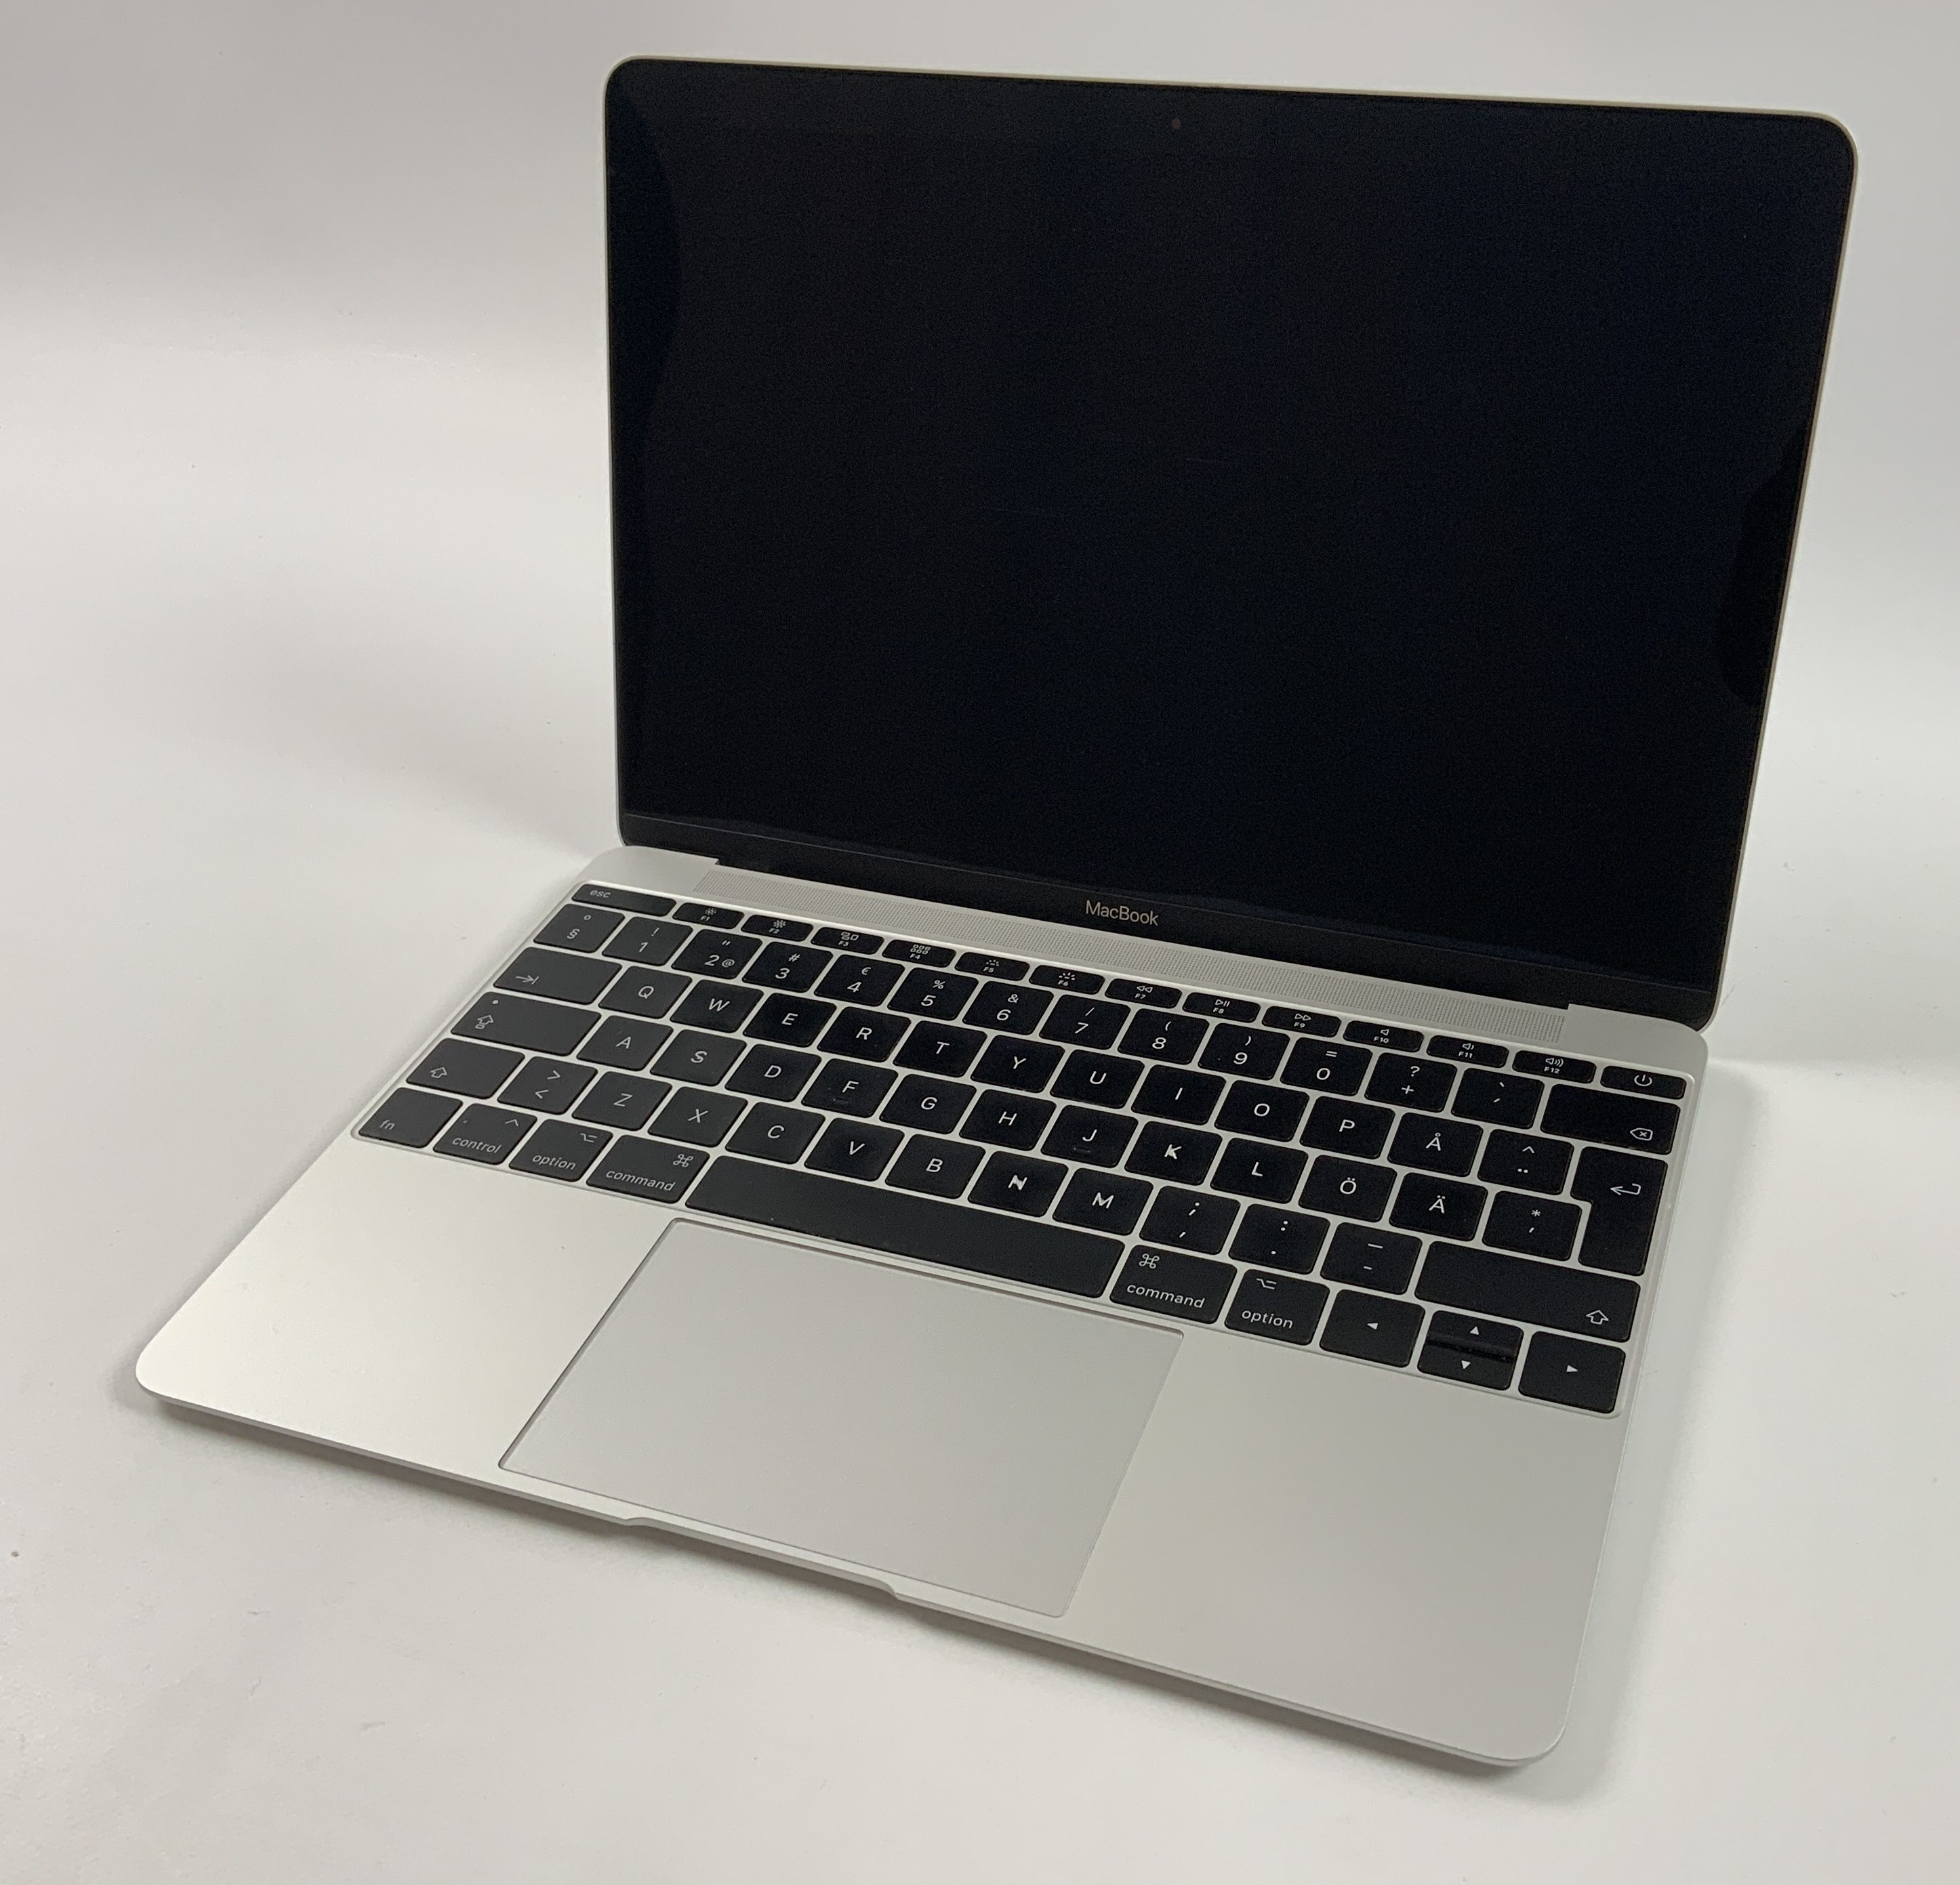 "MacBook 12"" Mid 2017 (Intel Core i5 1.3 GHz 16 GB RAM 512 GB SSD), Silver, Intel Core i5 1.3 GHz, 16 GB RAM, 512 GB SSD, bild 1"